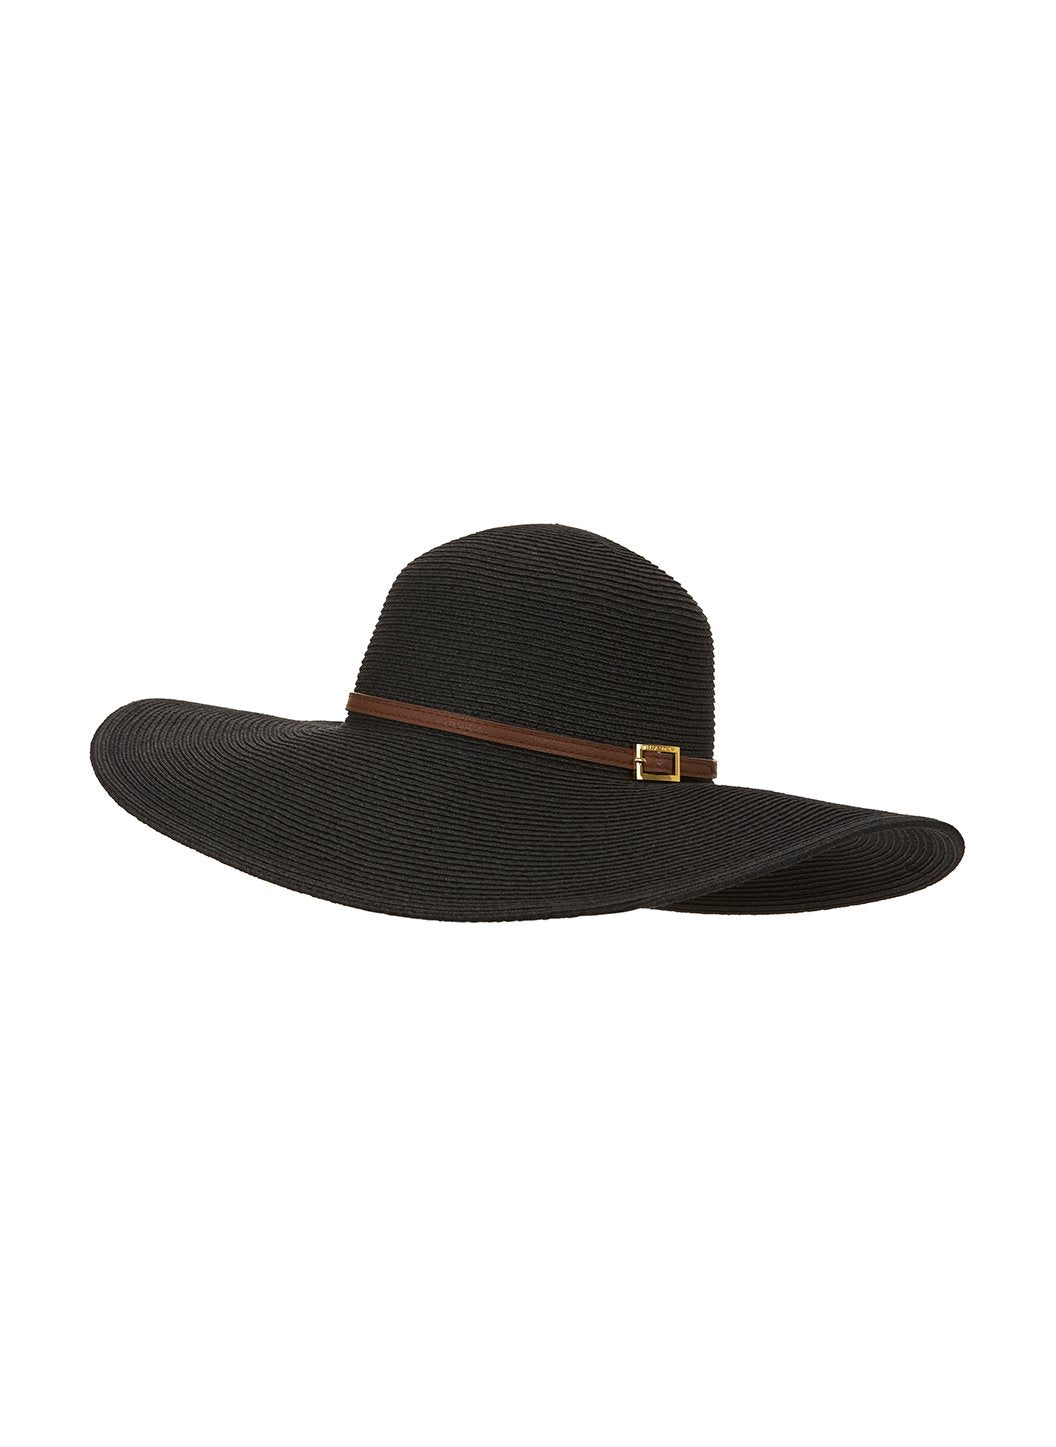 Jemima Black Hat